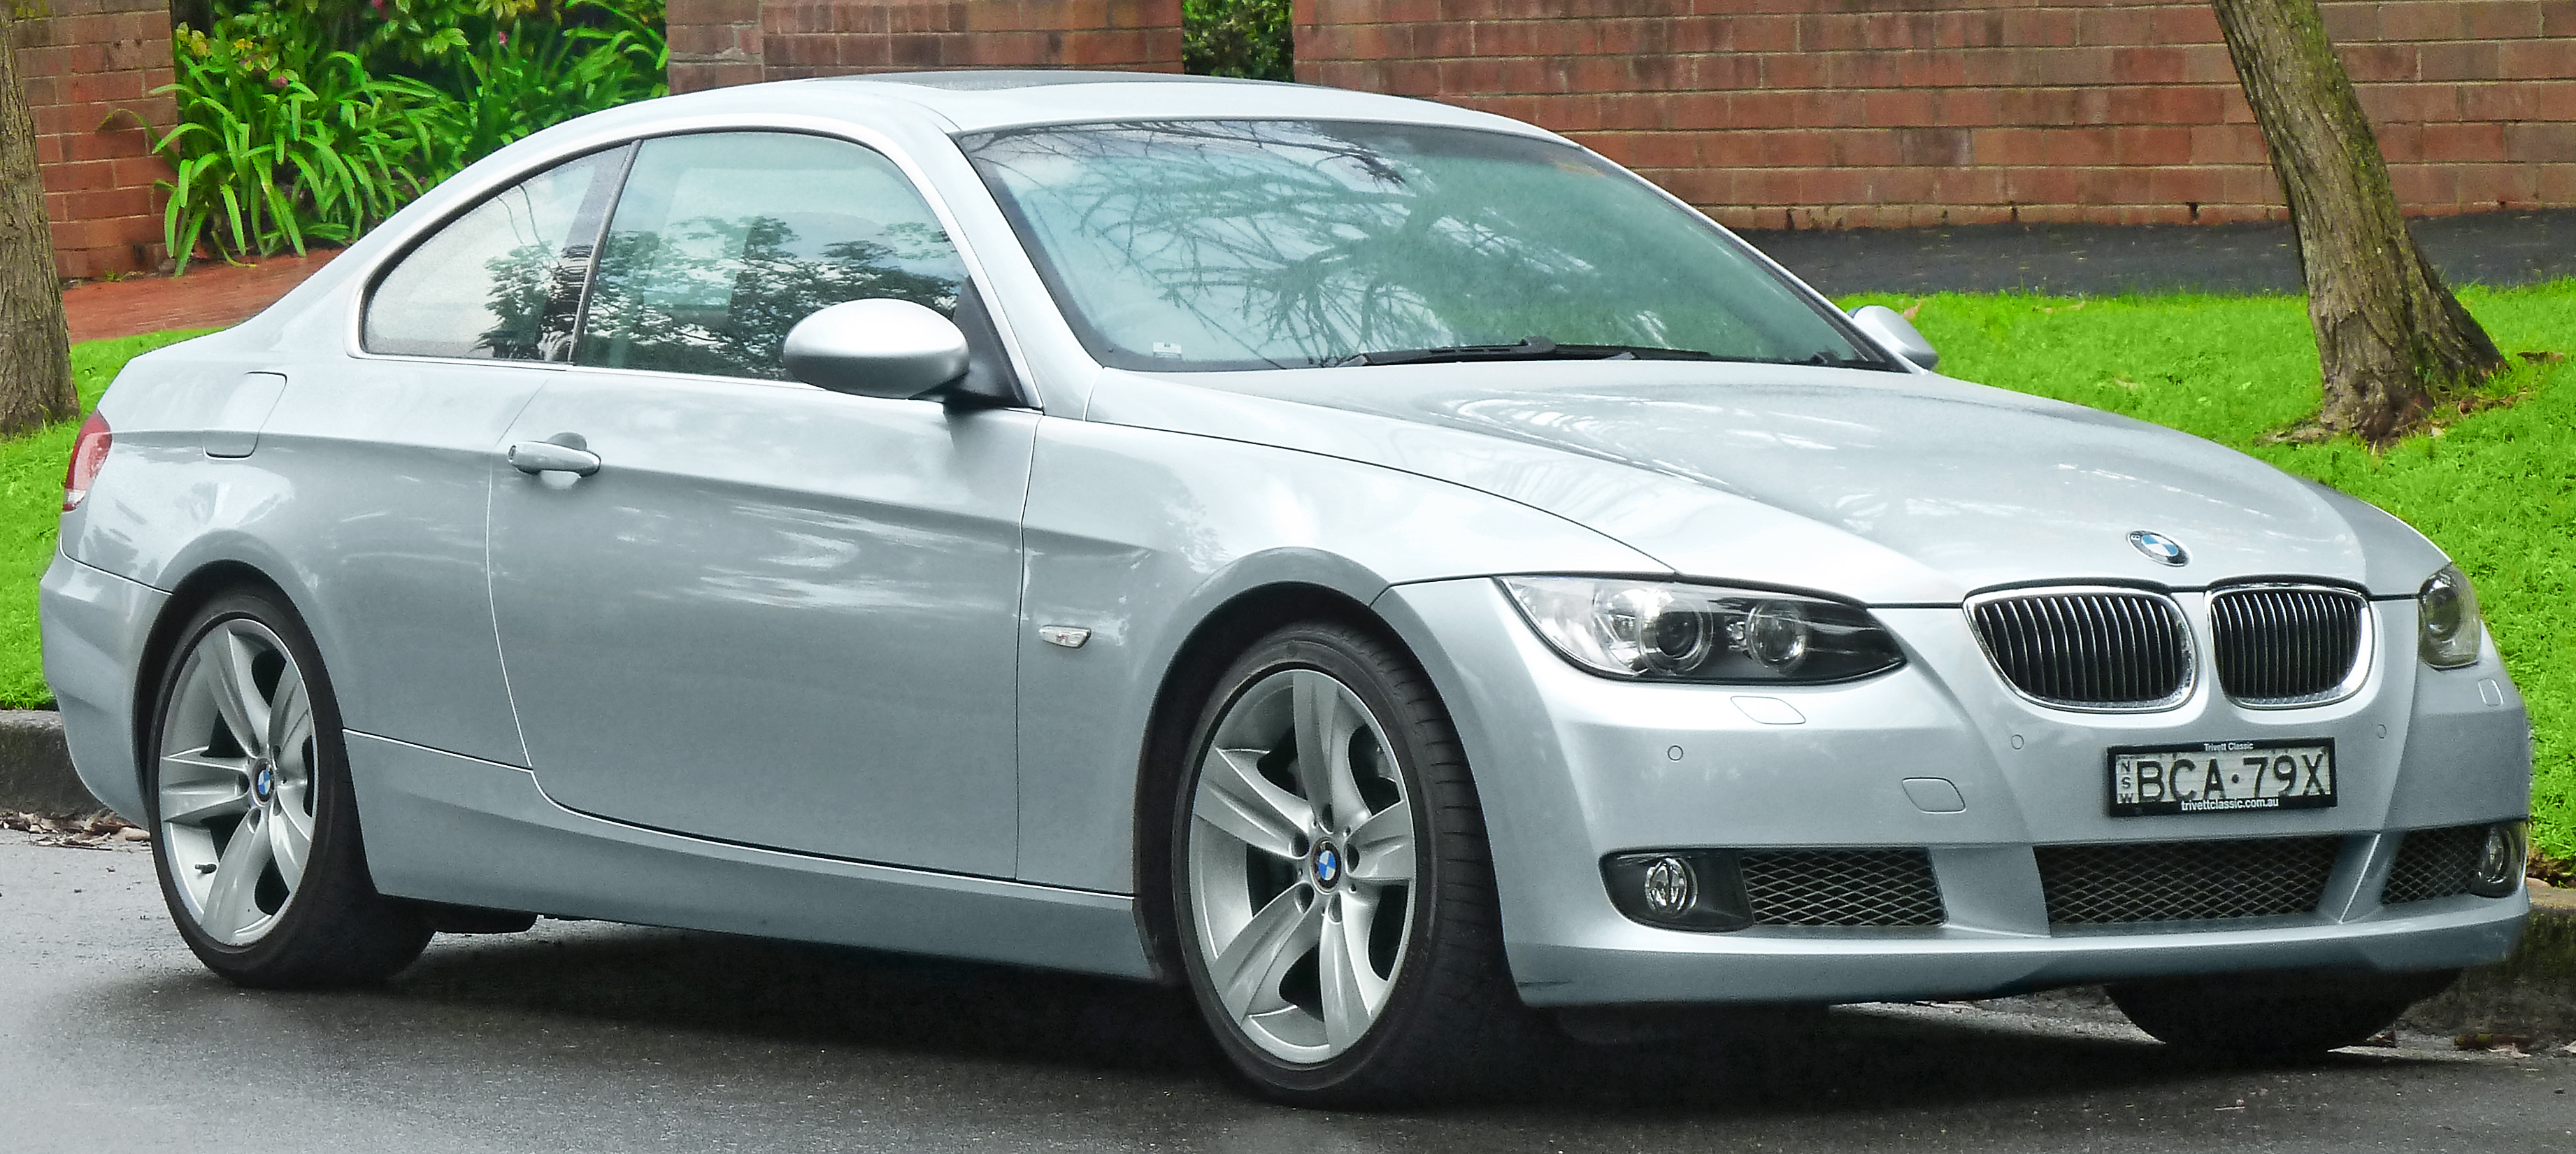 2006 bmw 335i e90 related infomation specifications weili automotive network. Black Bedroom Furniture Sets. Home Design Ideas